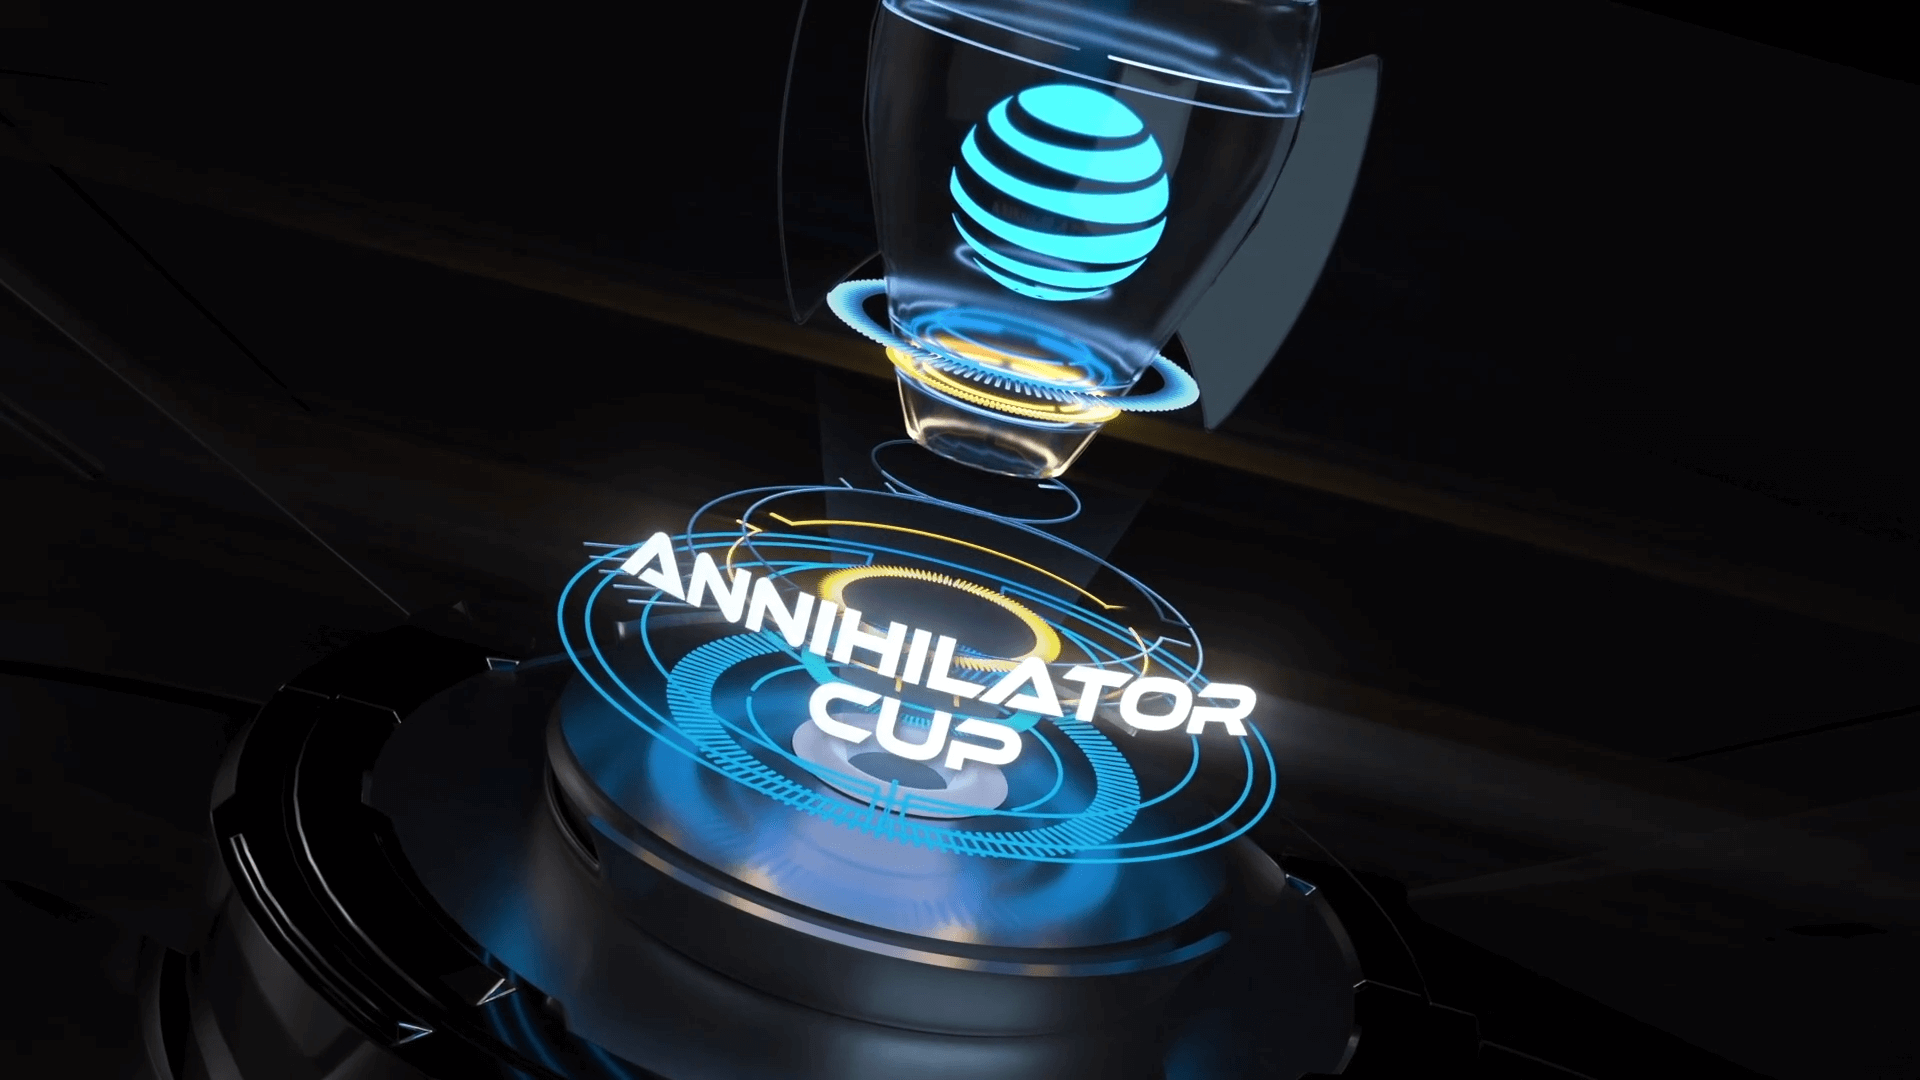 AT&T Annihilator Cup: Week 3 Mortal Kombat 11 Results